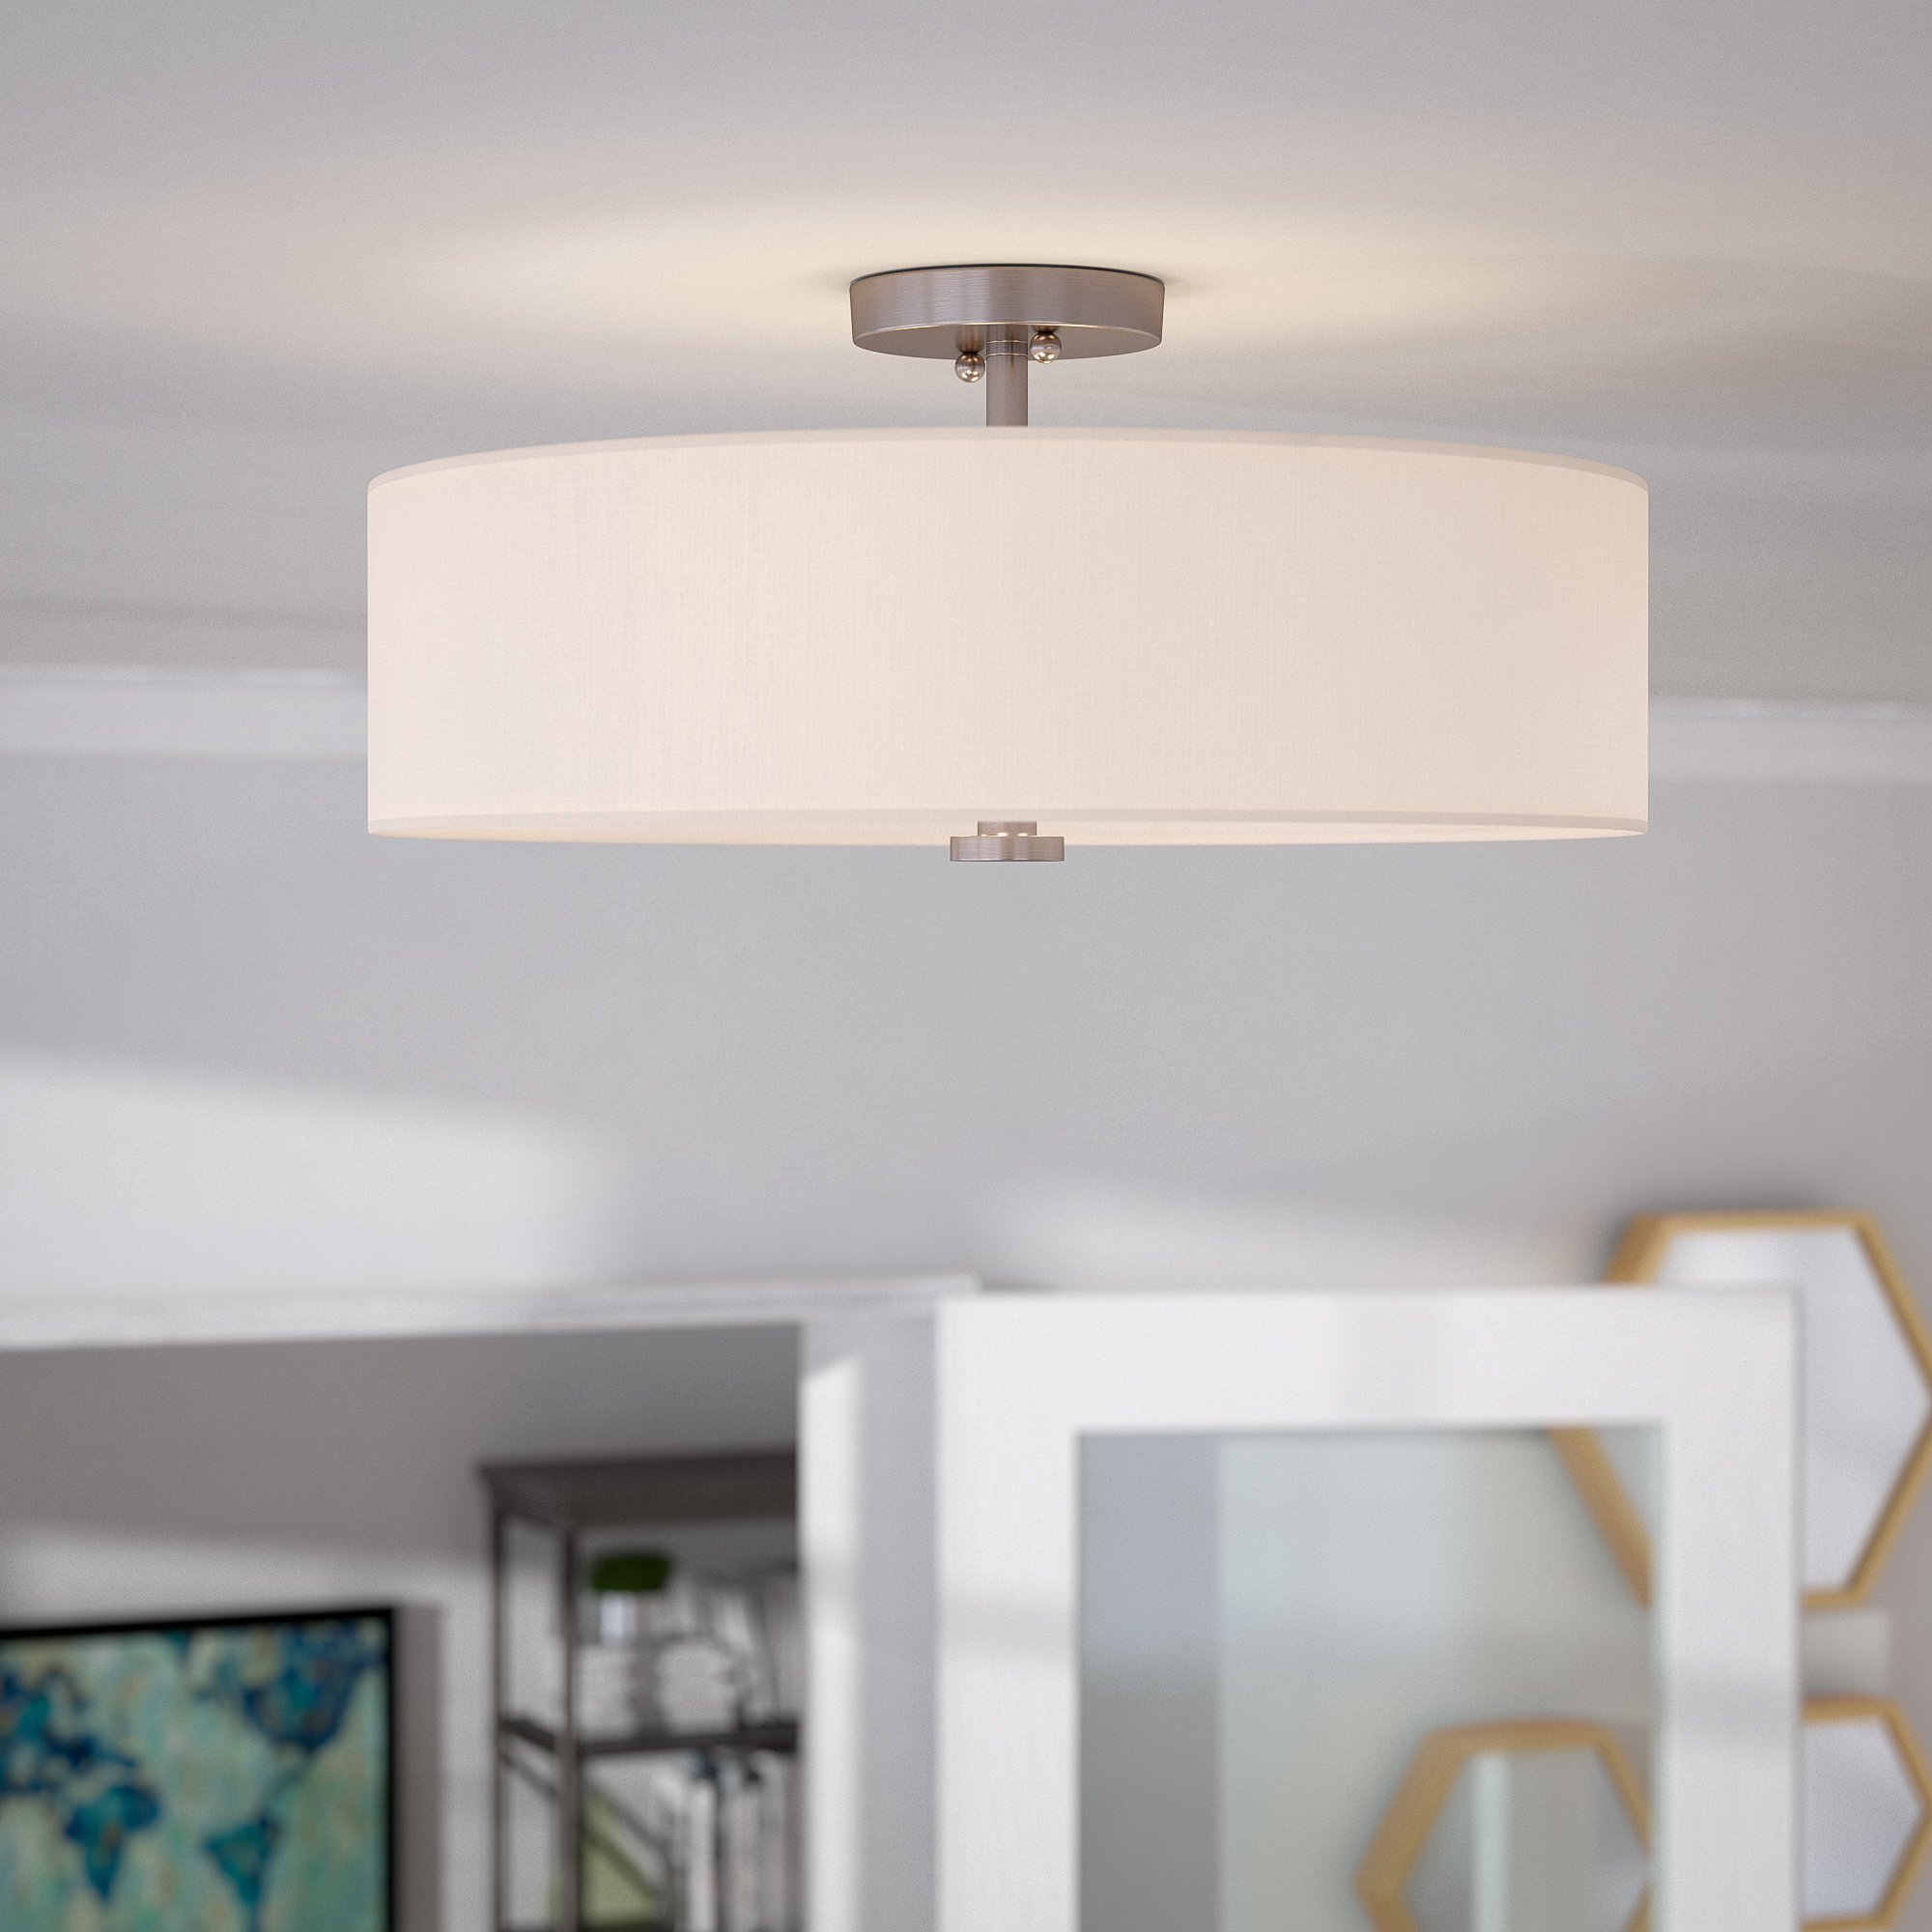 Kasey 3 Light Single Drum Pendants Throughout Most Recent Burgoon 4 Light Semi Flush Mount (View 15 of 25)